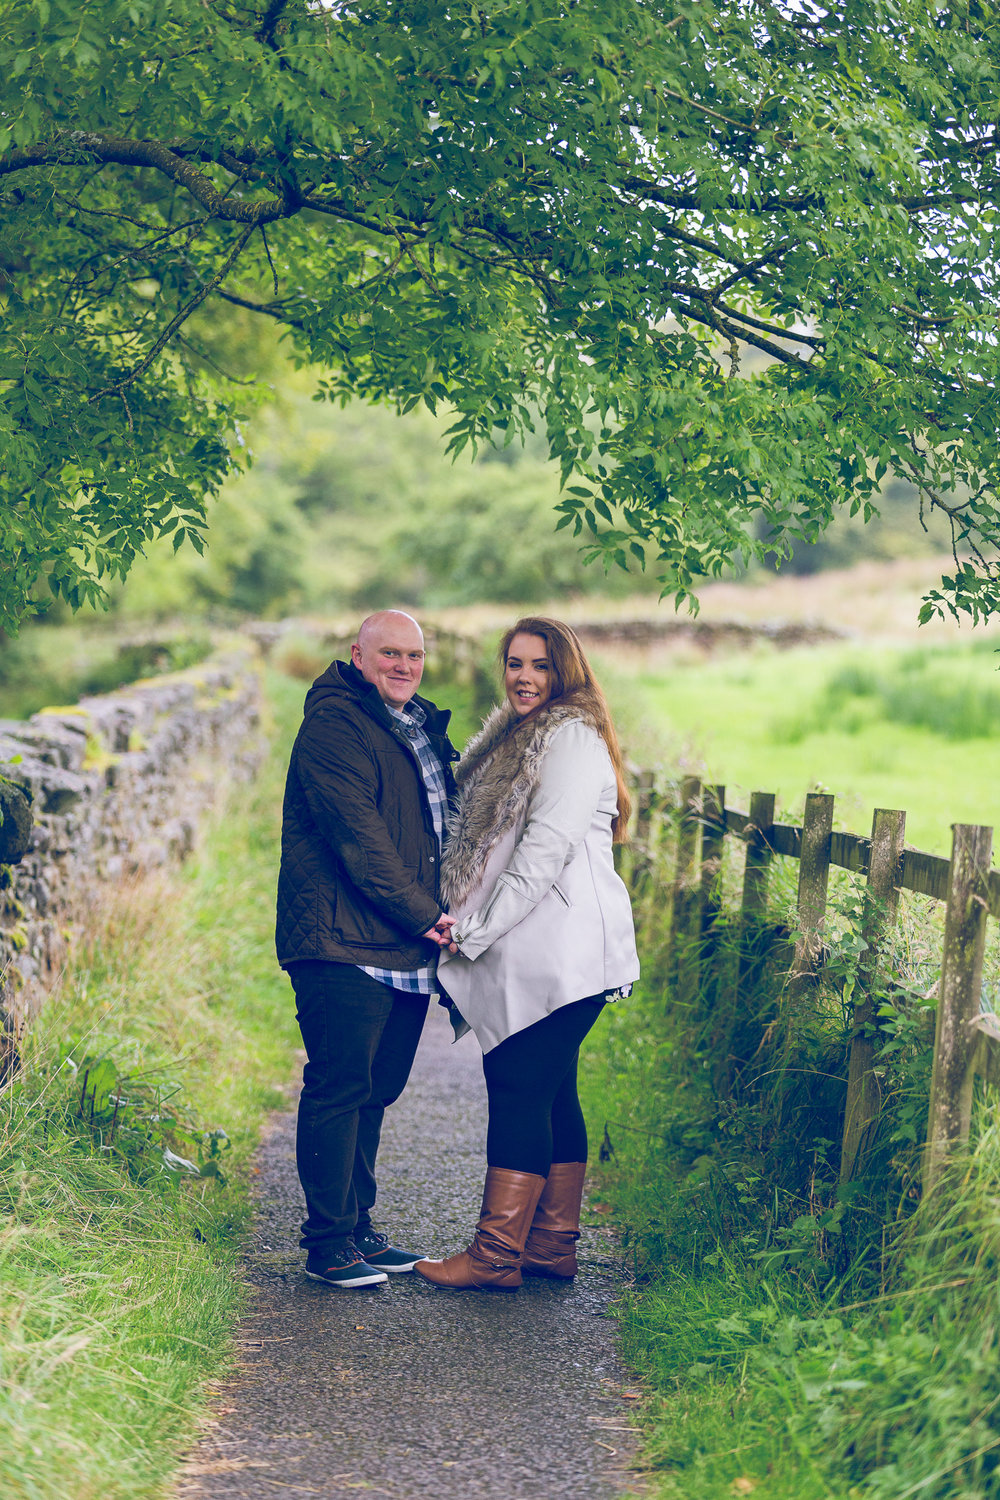 Colour-3-Melissa & Adam-Engagement-Wycoller Country Park-Lancashire-photo.jpg